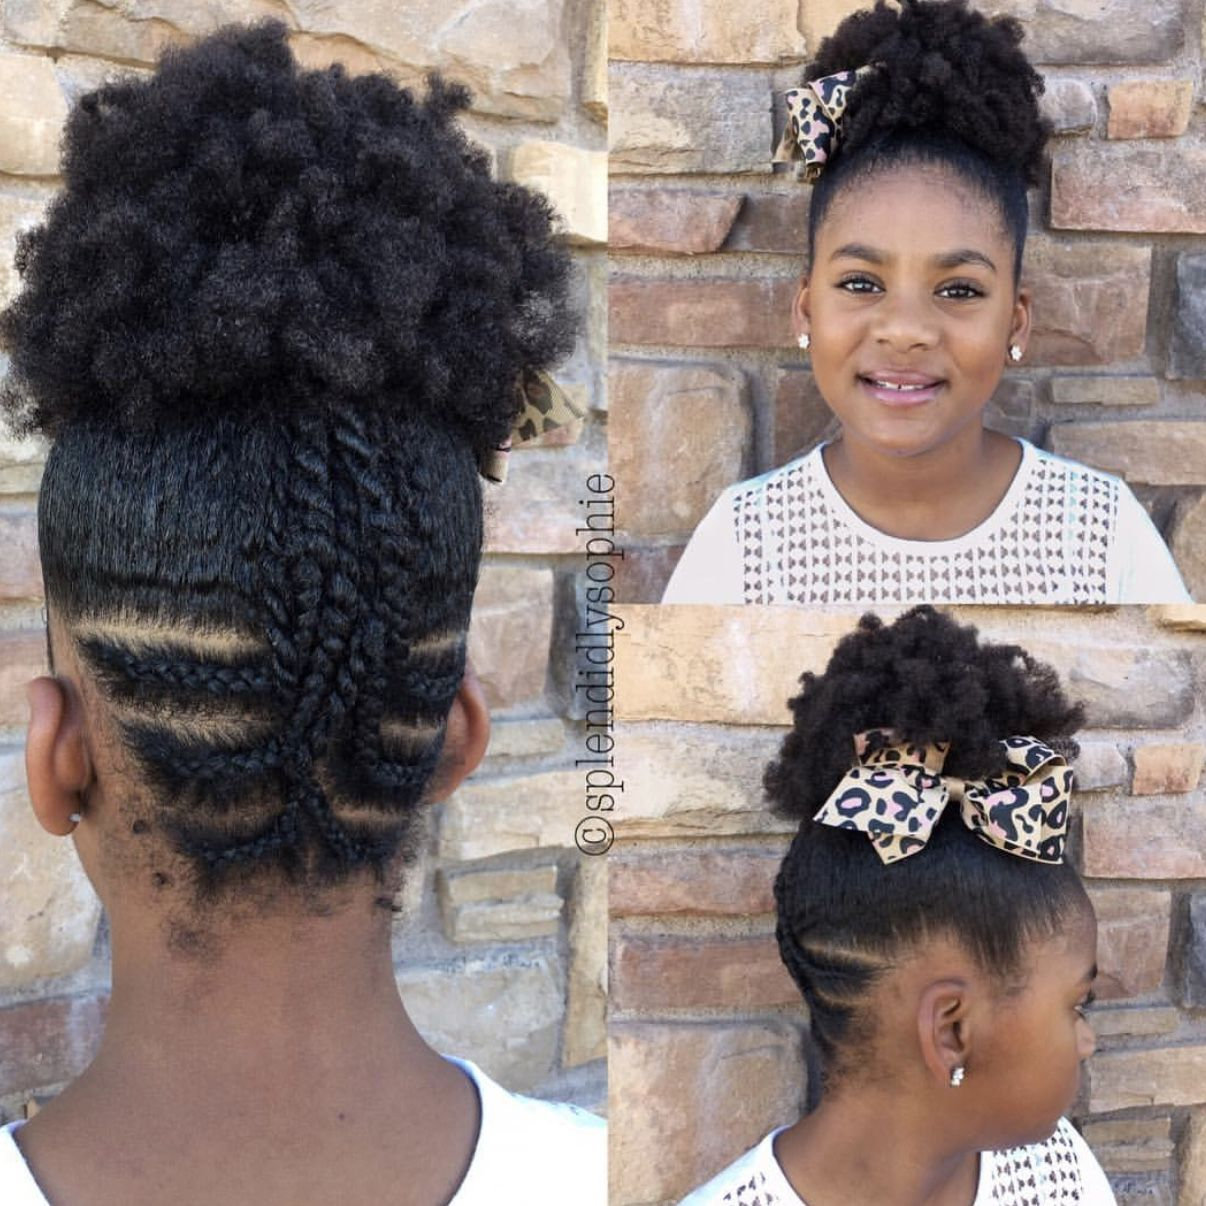 Christmas Natural Hairstyles For Kids Holiday Hair Shop Www Naturalhairshop Com For Hair Acce Lil Girl Hairstyles Wedding Hairstyles For Girls Girl Hairstyles